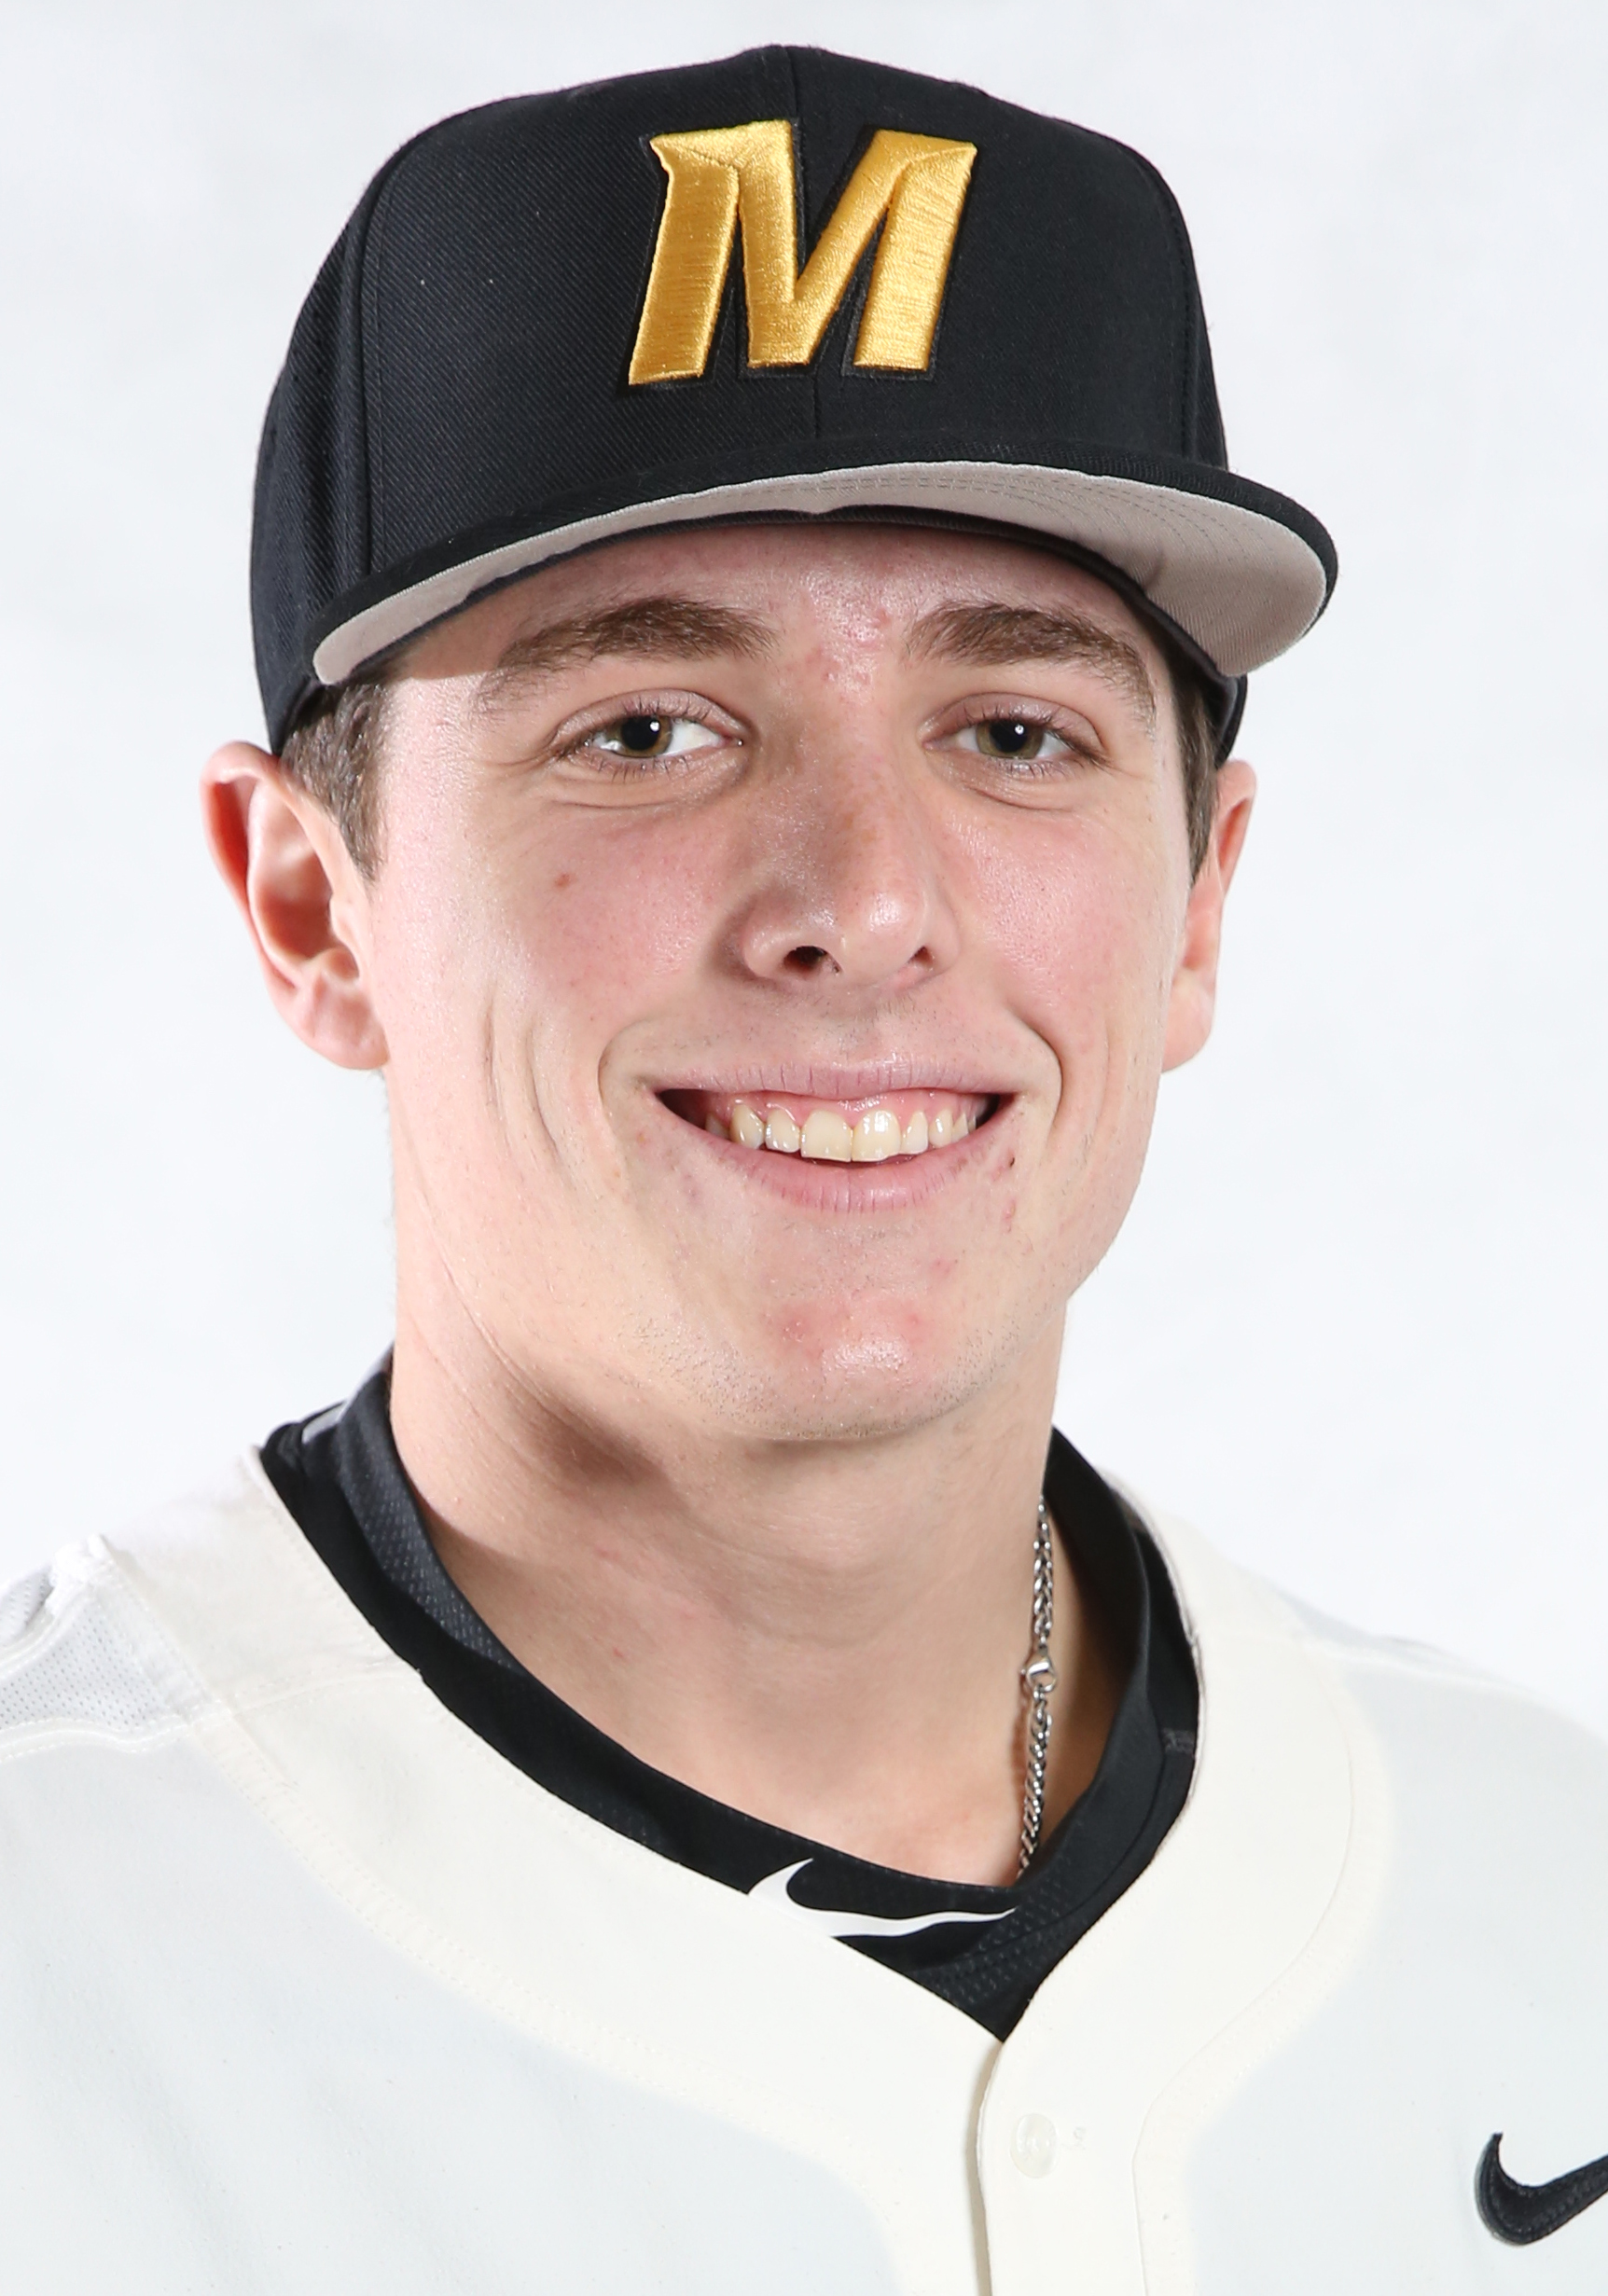 Mizzou's Ryan Howard selected in 5th round of MLB Draft by Giants